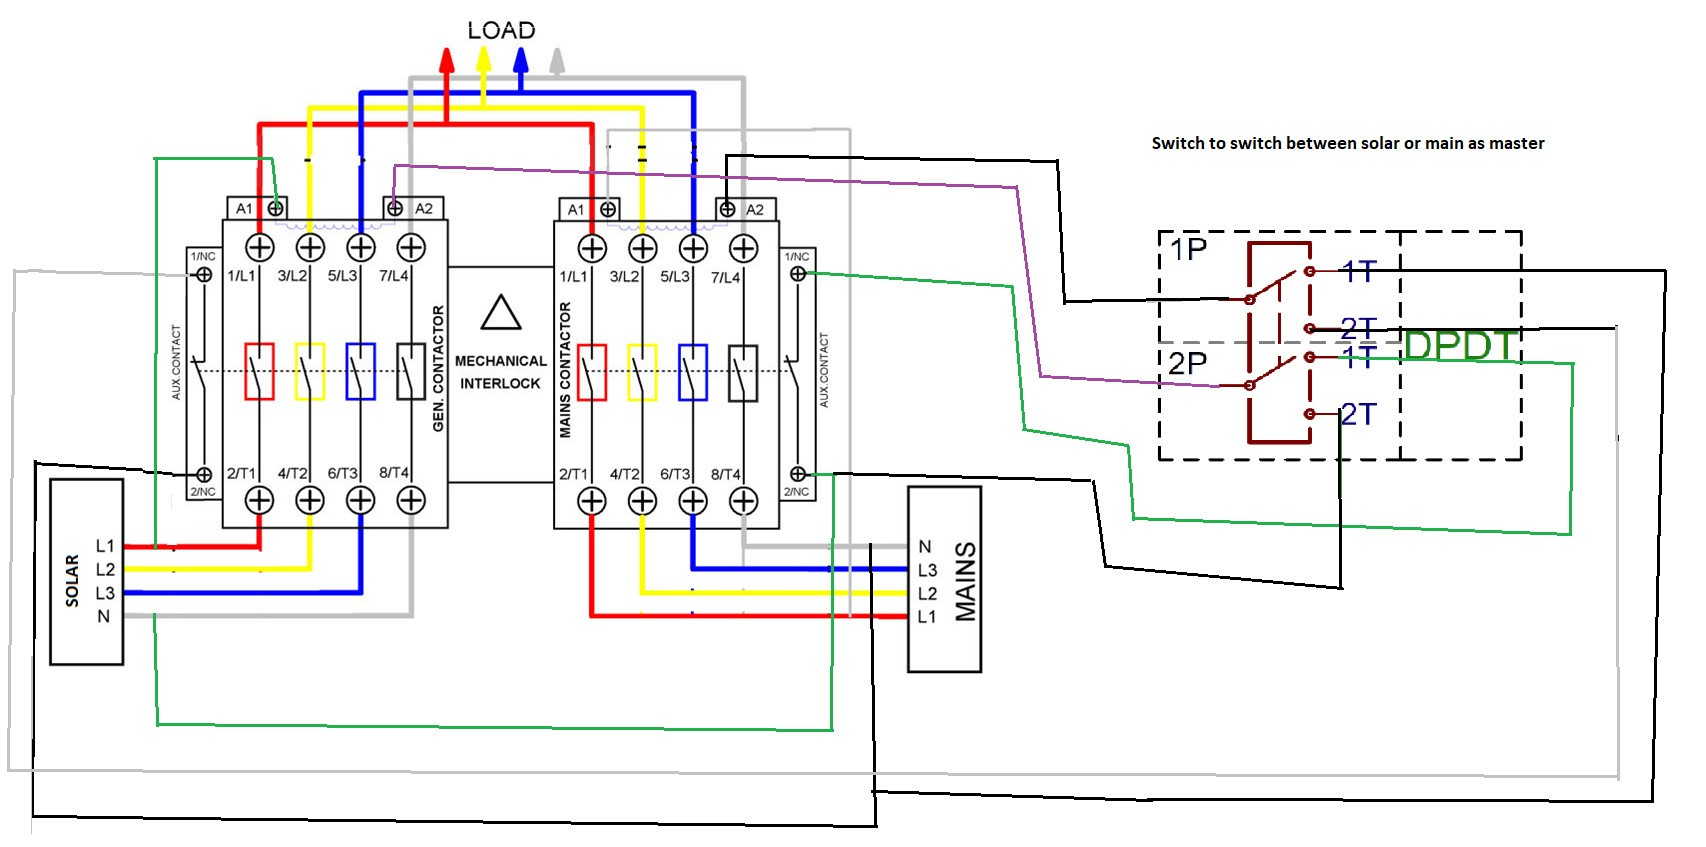 Reliance Generator Transfer Switch Wiring Diagram Image On Photos Of Portable Automatic Between Solar